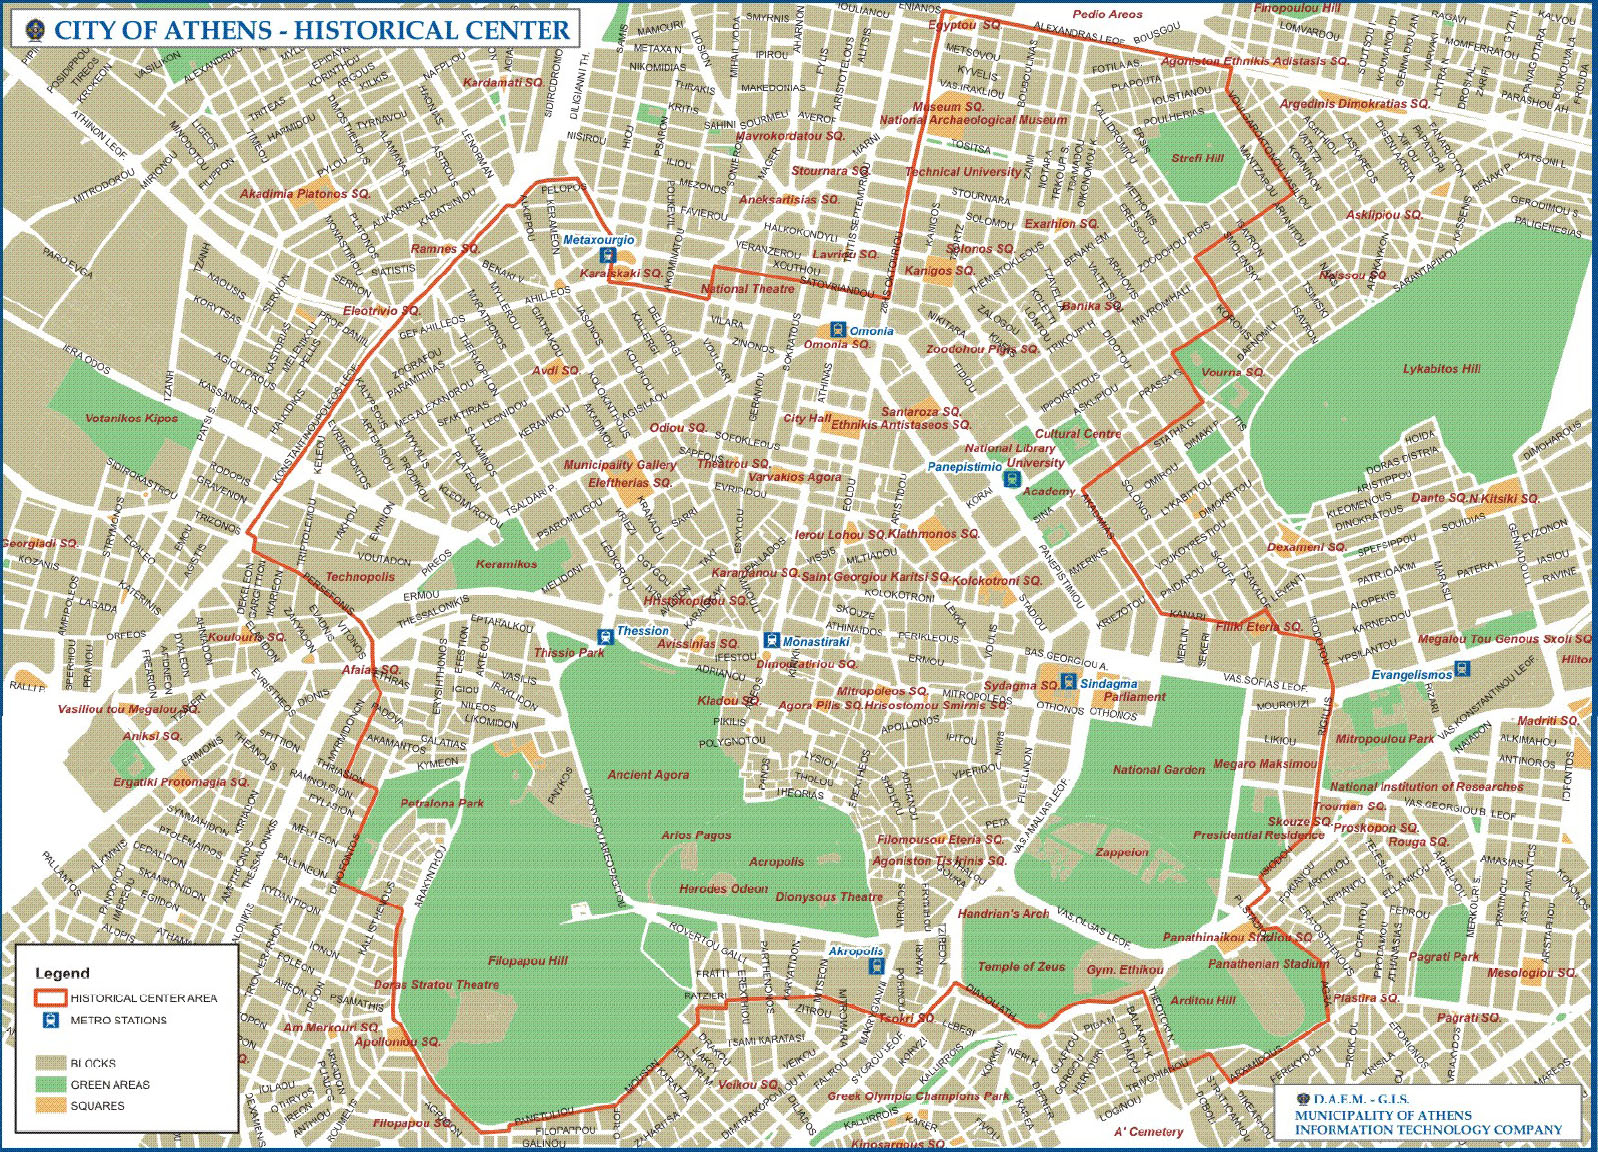 Spandidos Publications Athens Map